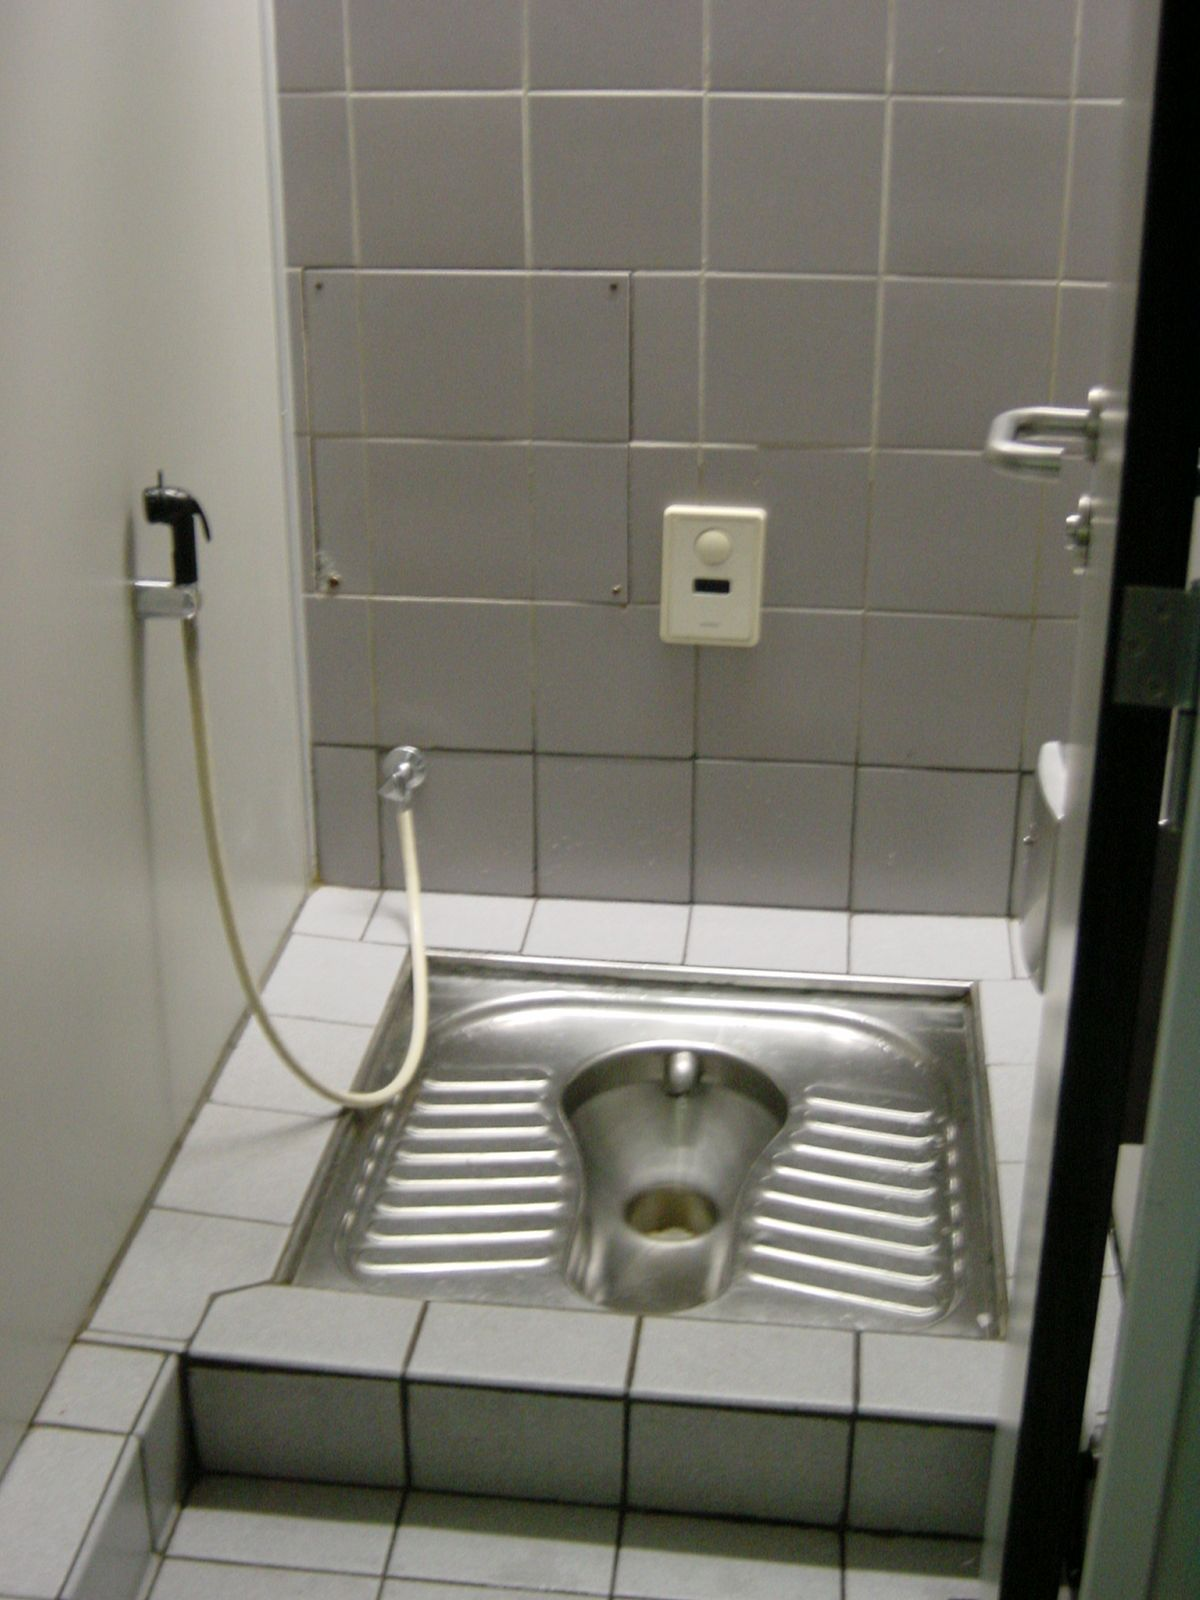 12 Toilet Oddities Around The World That Surprise Japan With